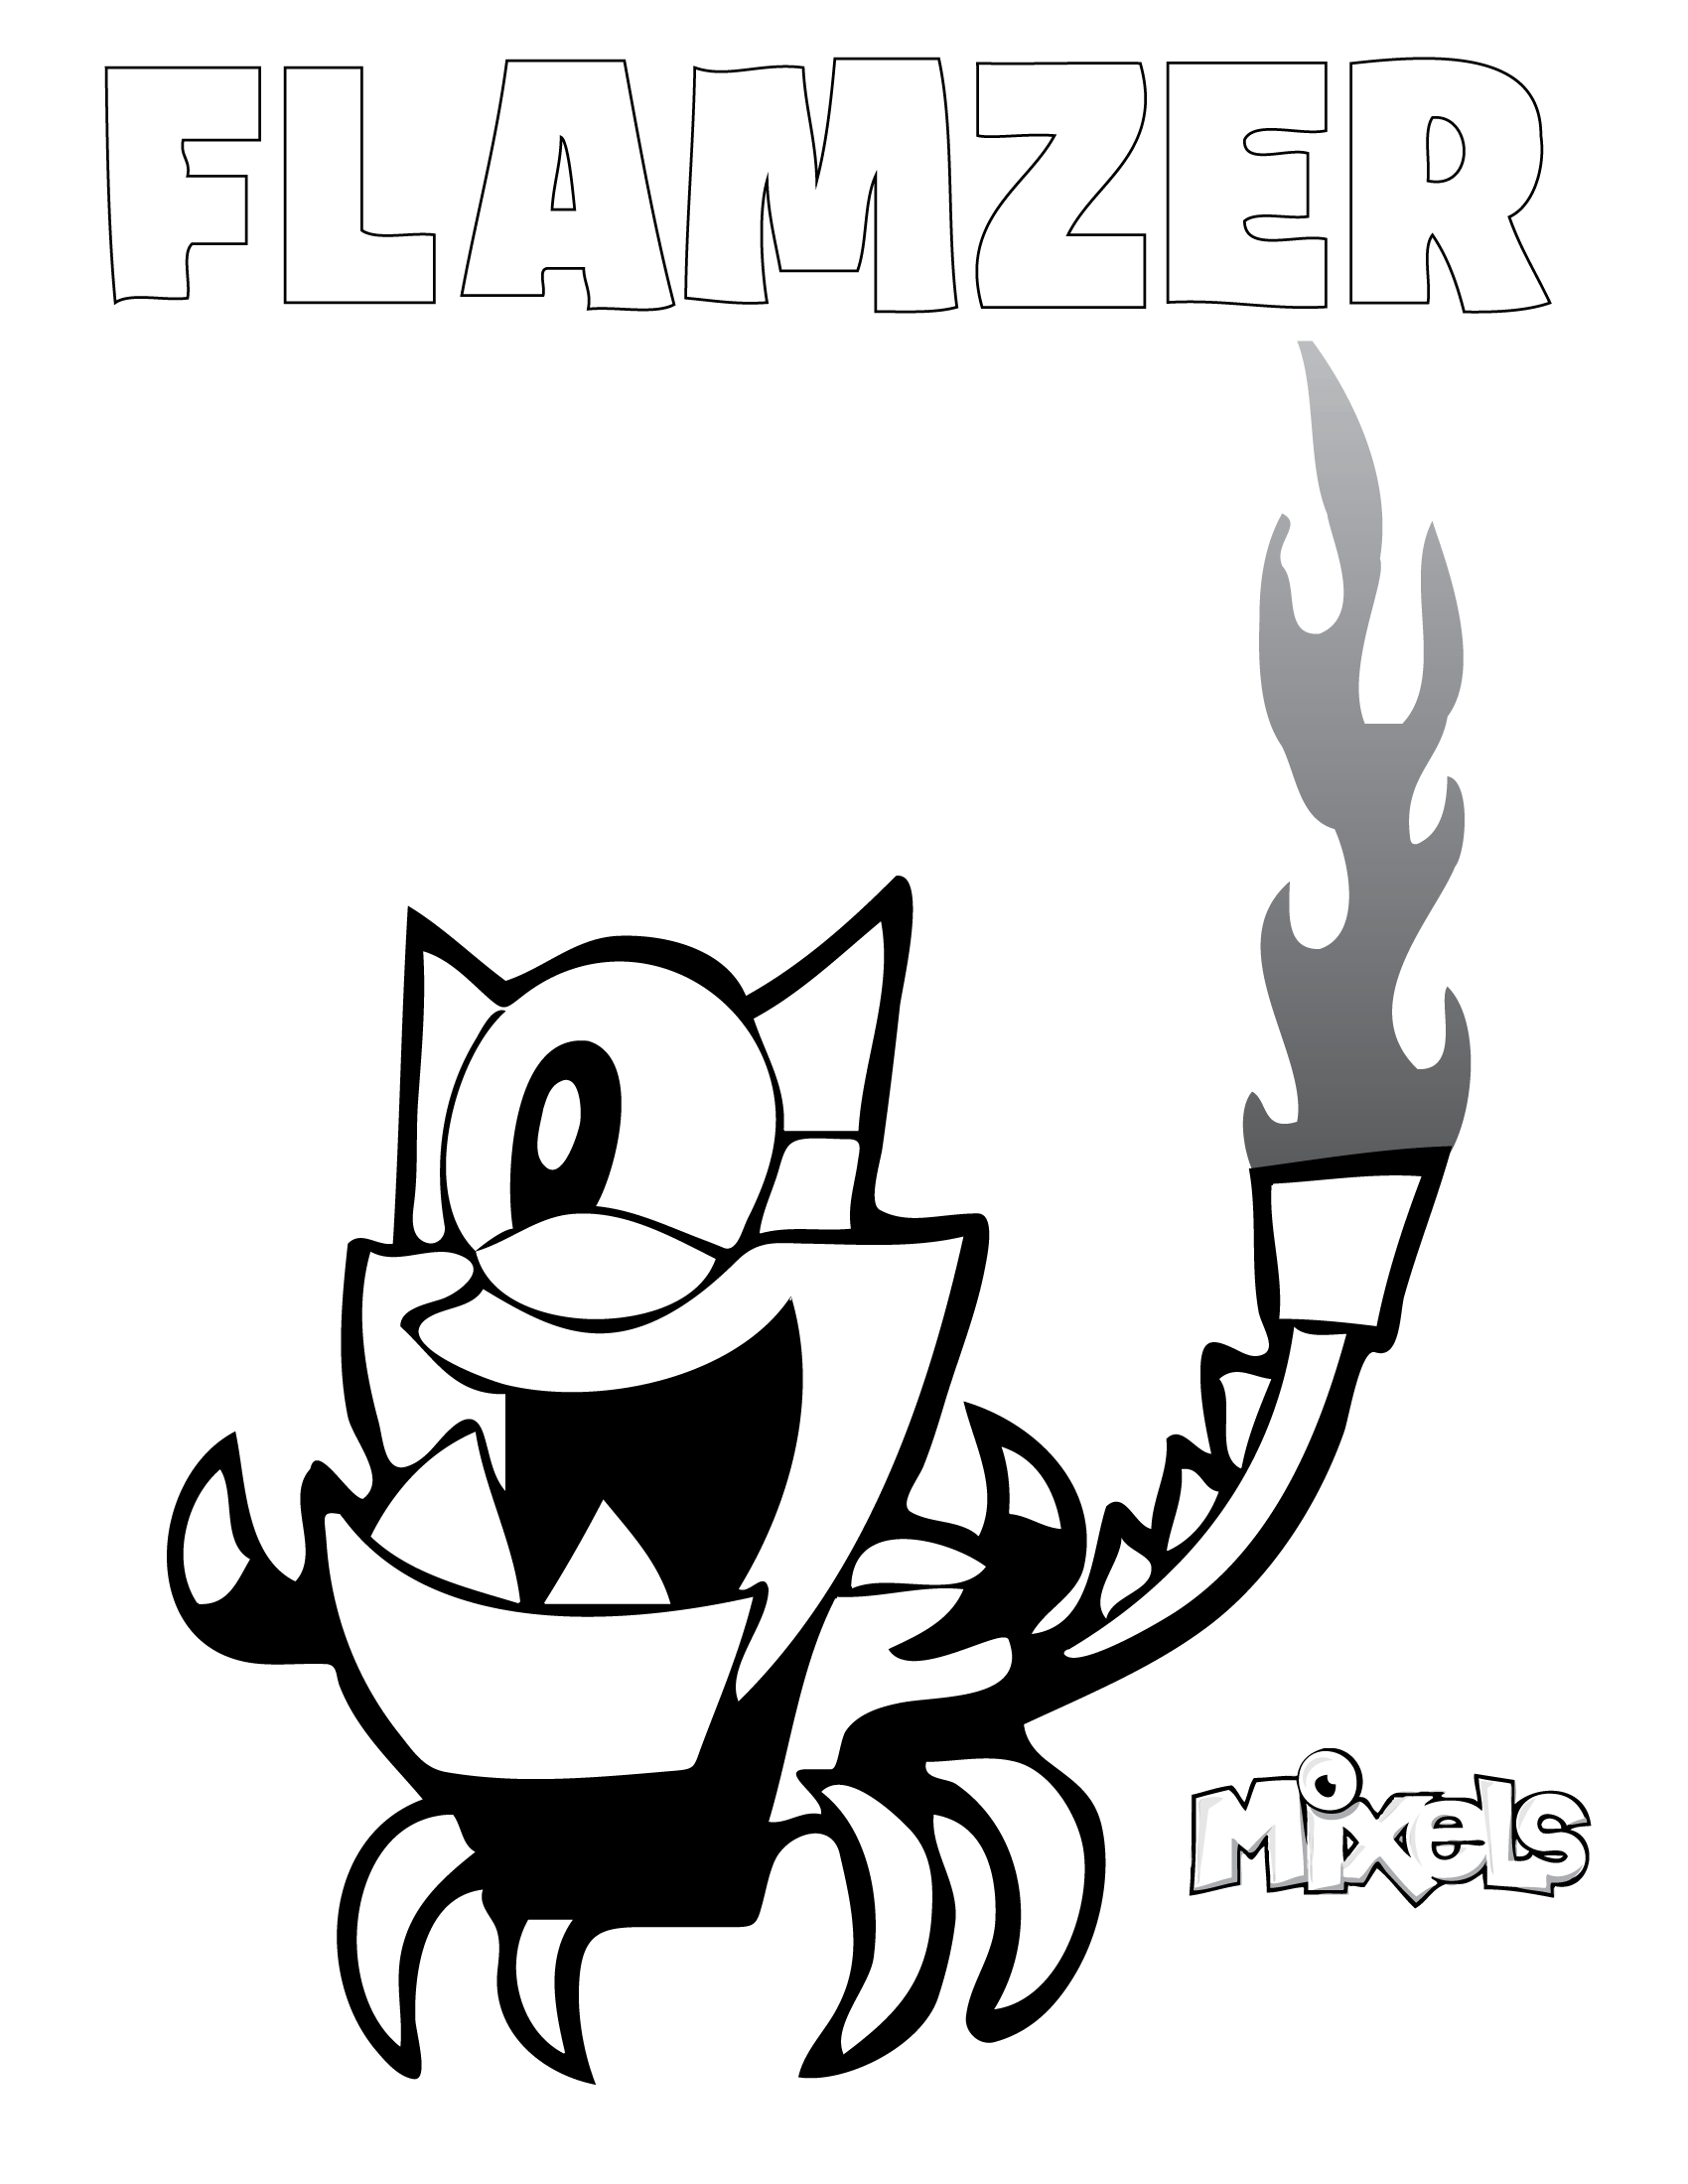 mixels coloring pages to print - photo#24